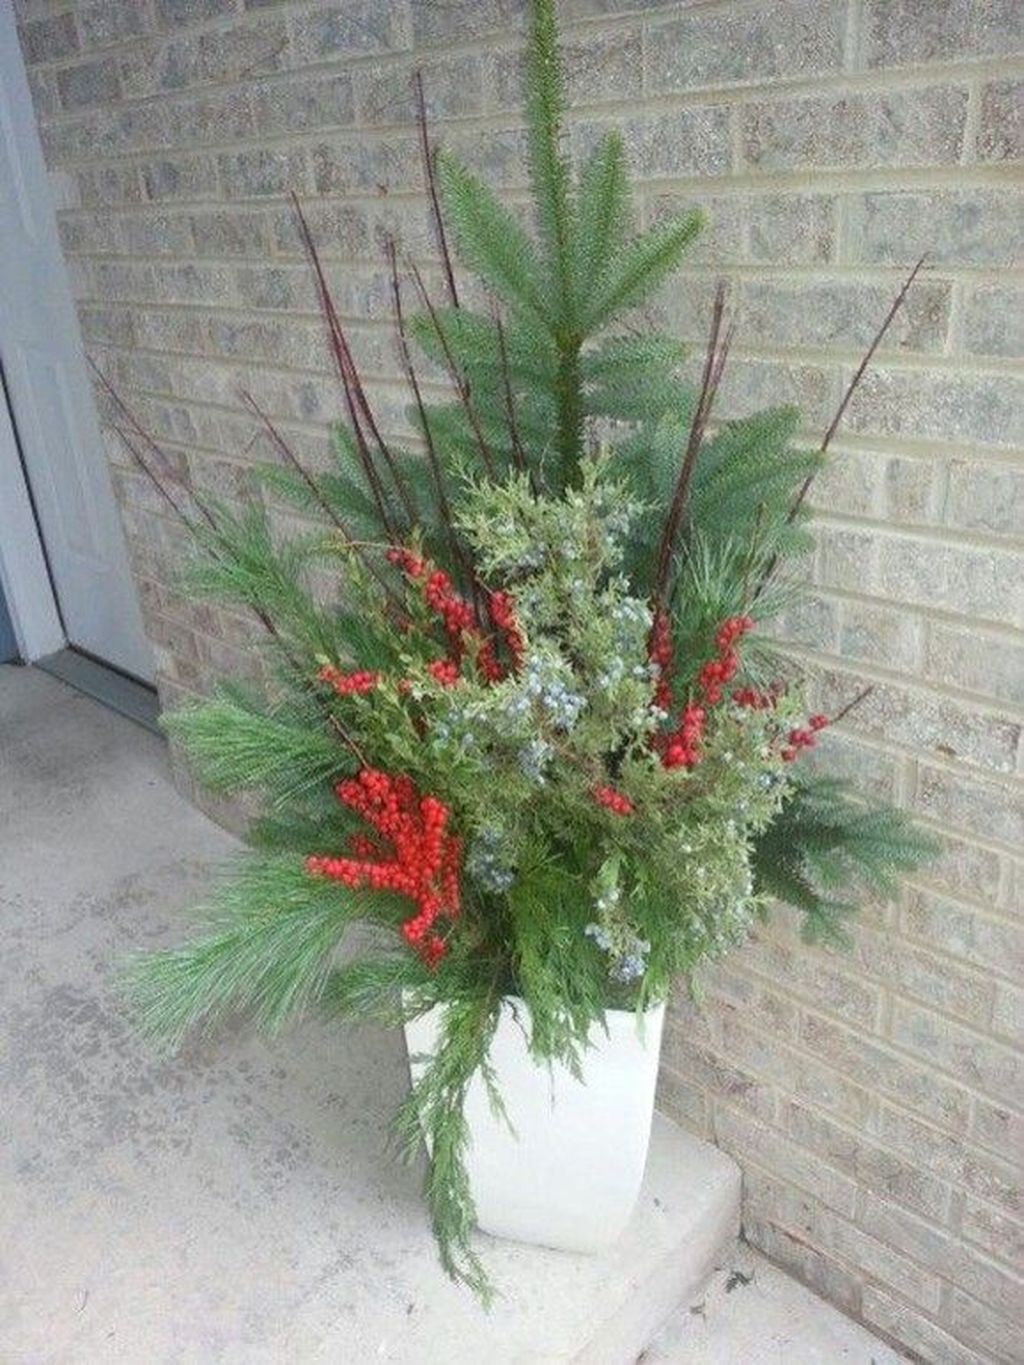 Marvelous Outdoor Holiday Planter Ideas To Beauty Porch Décor 39